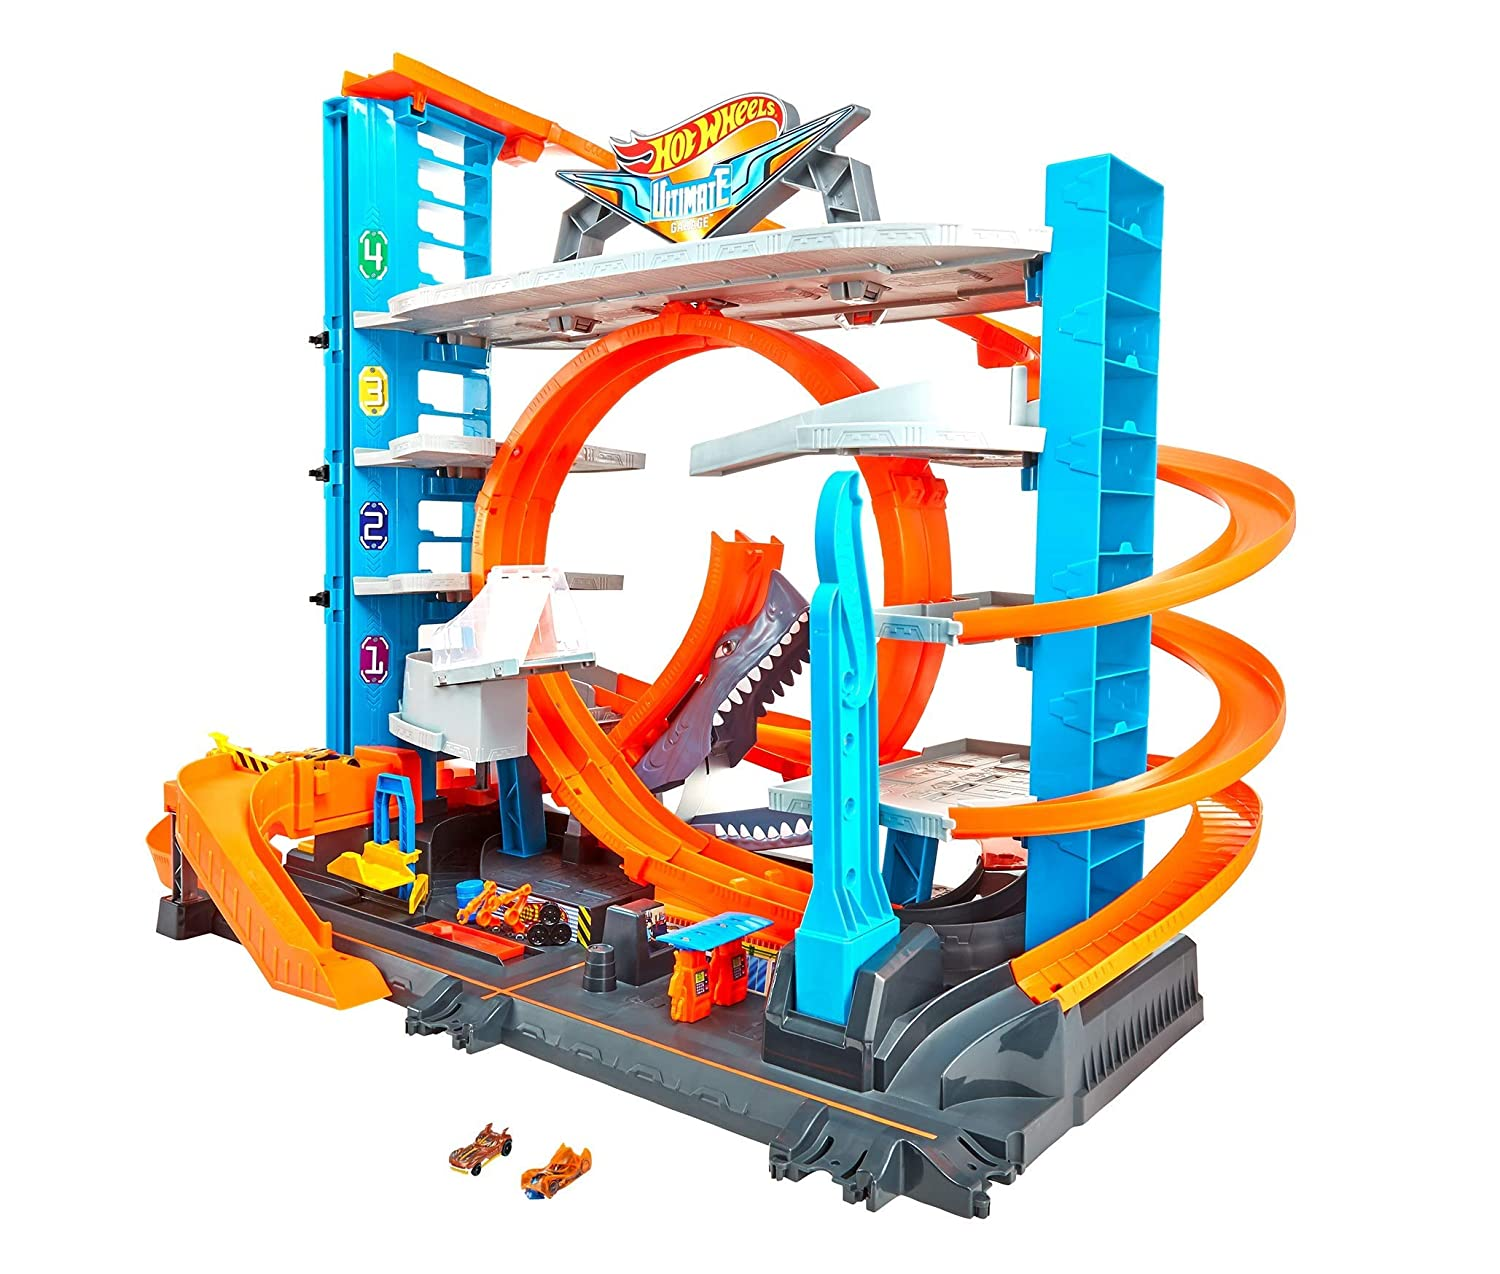 Mattel Hot Wheels Ultimate Garage Kids Toddler Children Play Game Set Kit